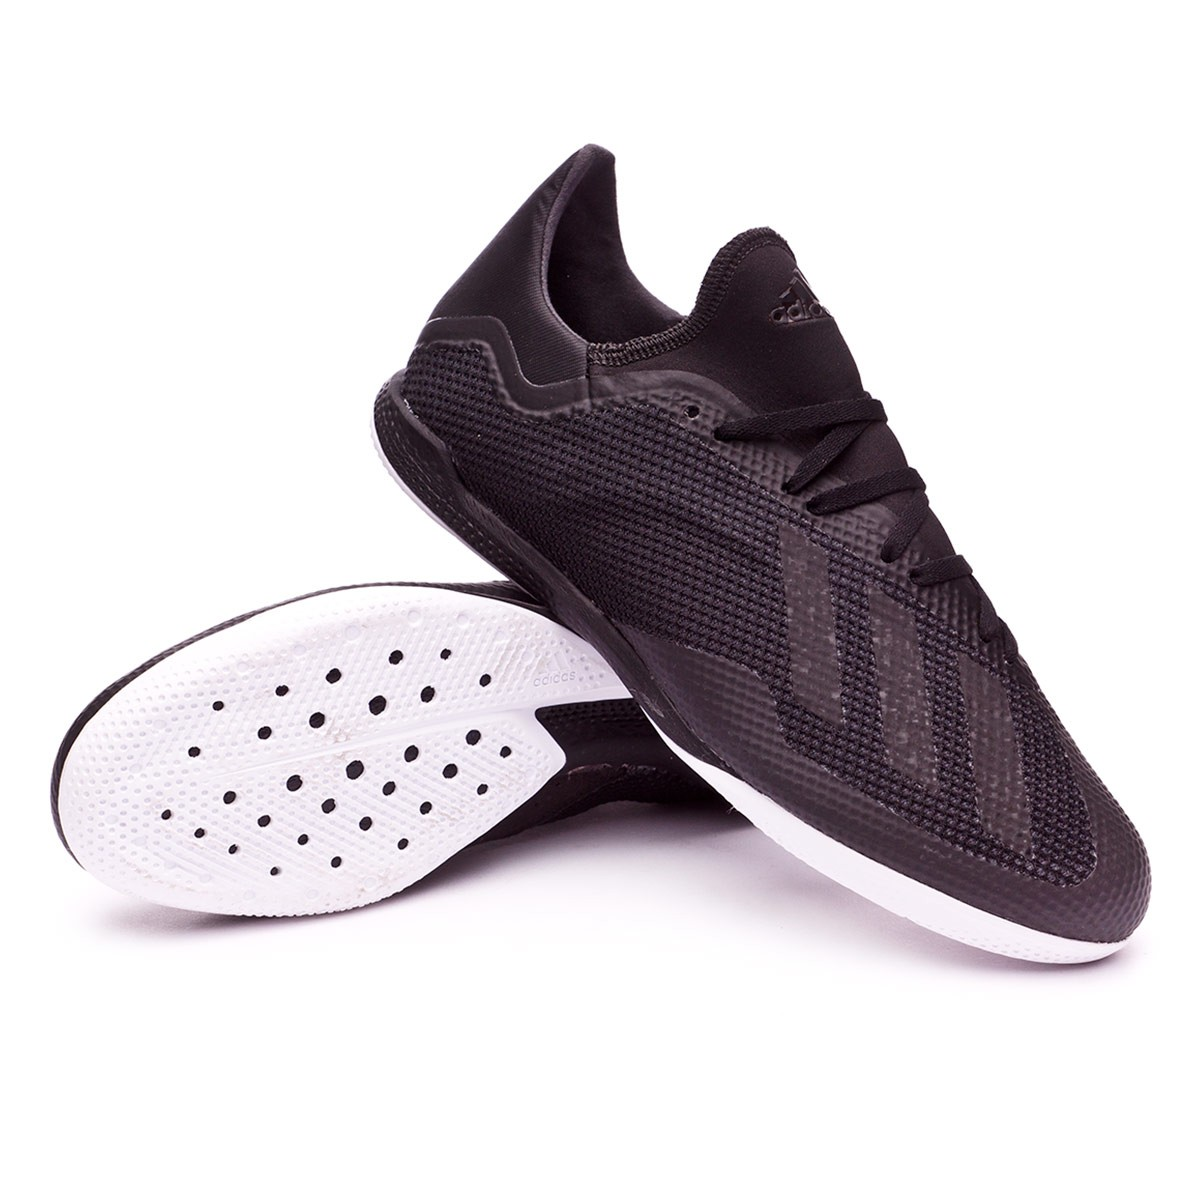 789dca79b0c7 Futsal Boot adidas X Tango 18.3 IN Core black-White-Solid grey - Football  store Fútbol Emotion